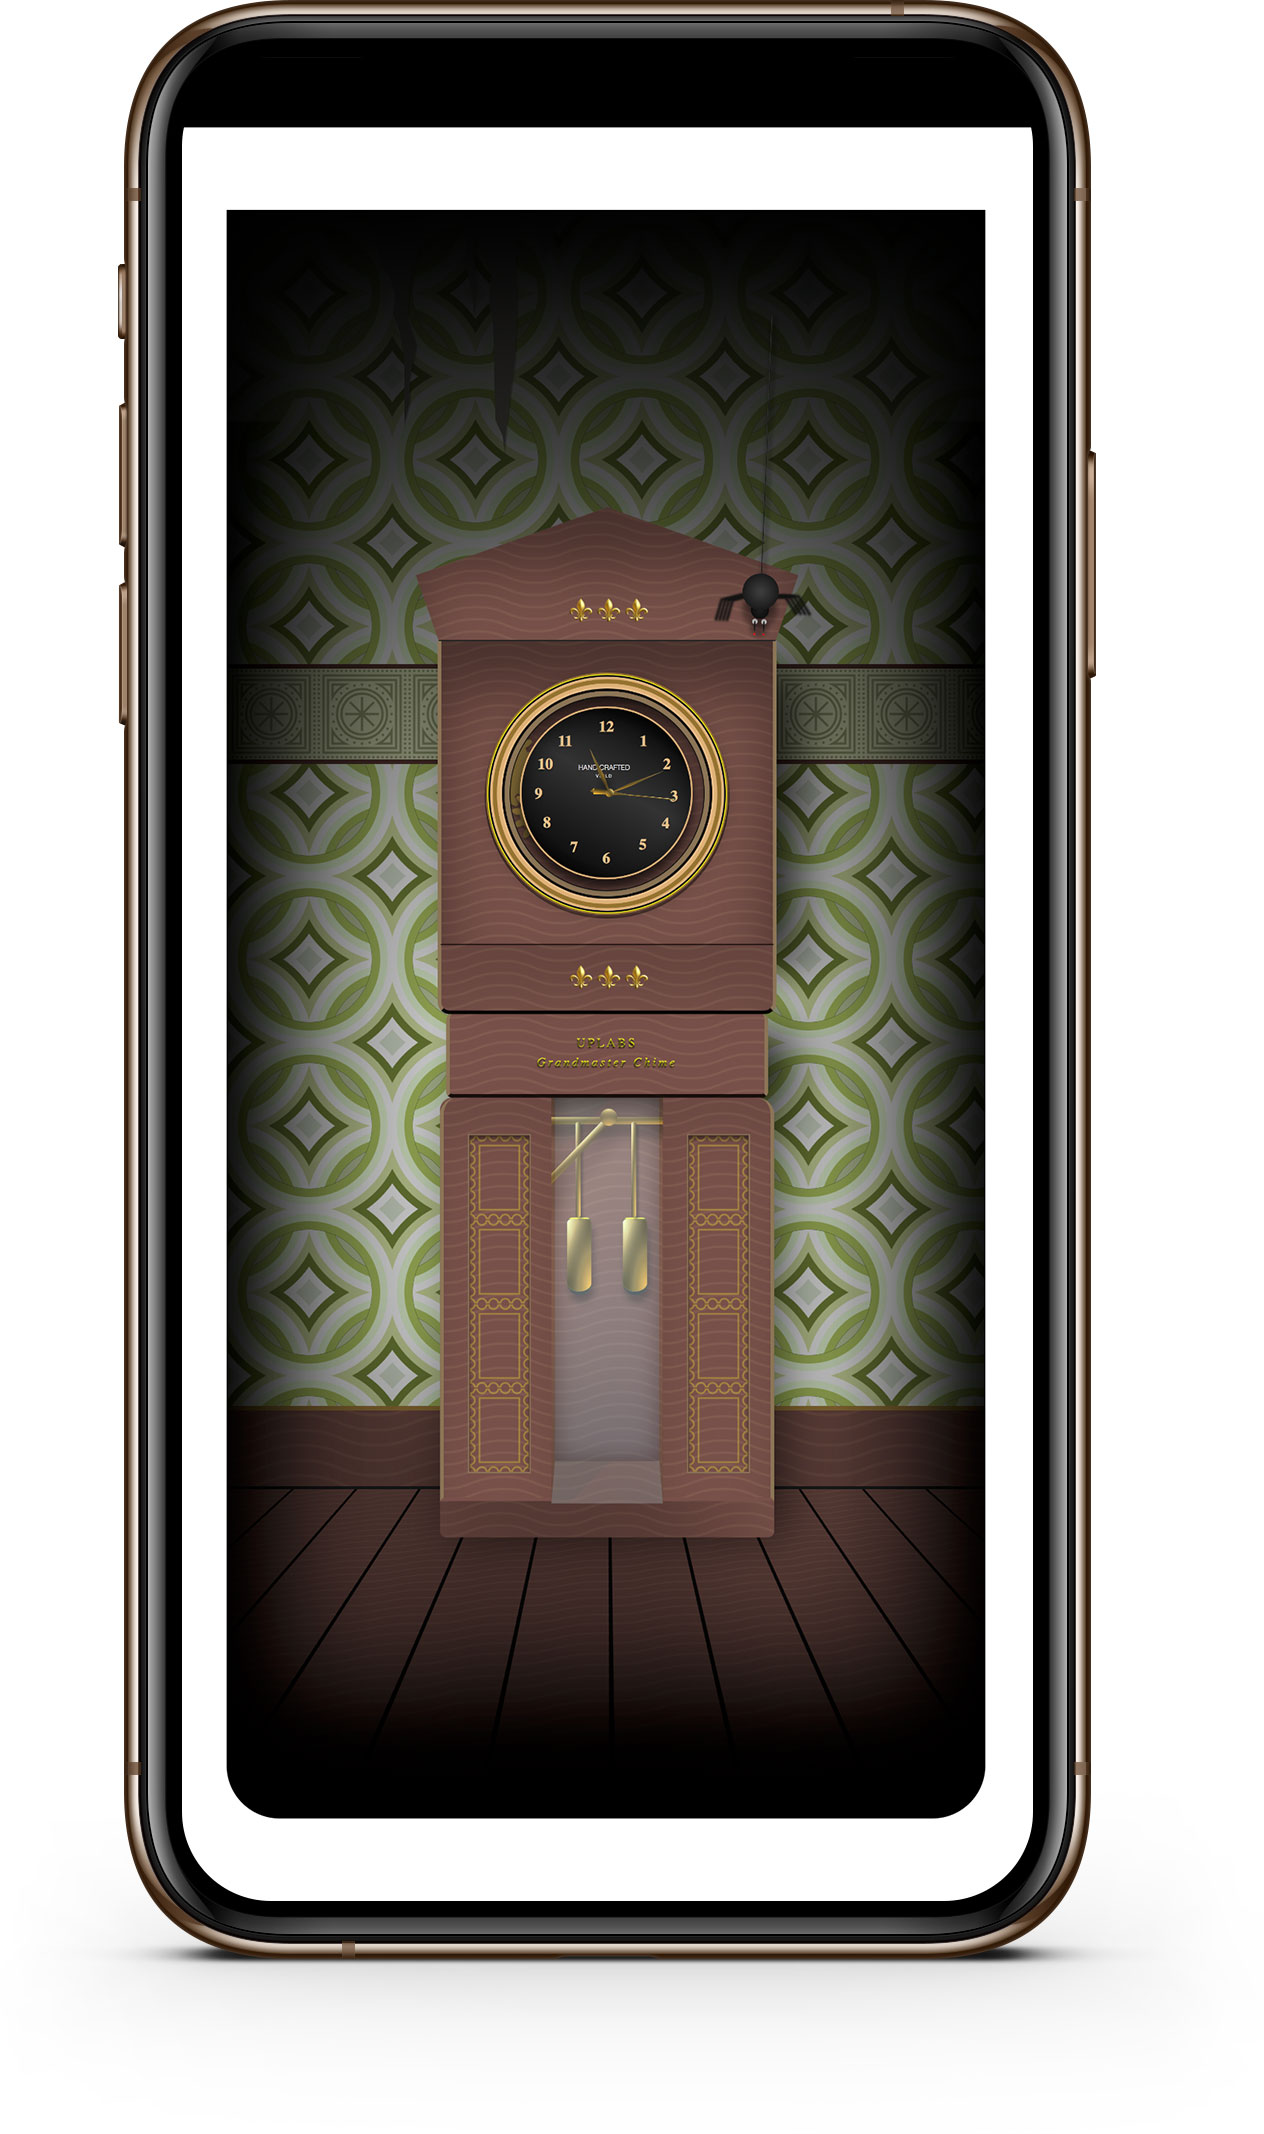 Grandfather clock mobile screenshot.